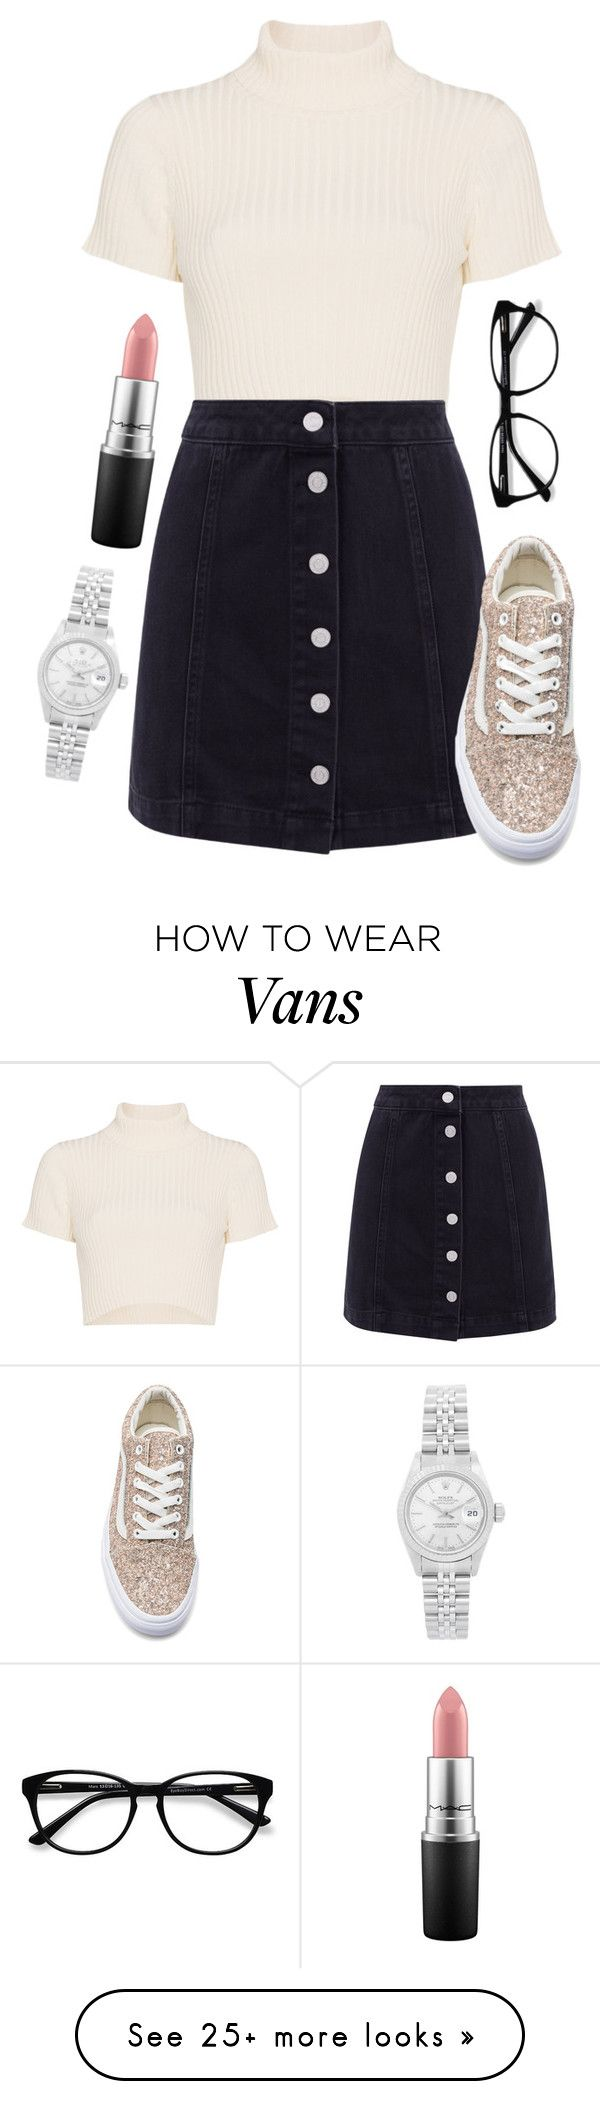 """""""I'm bored"""" by nycheart05 on Polyvore featuring Staud, Vans, EyeBuyDirect.com, MAC Cosmetics and Rolex"""